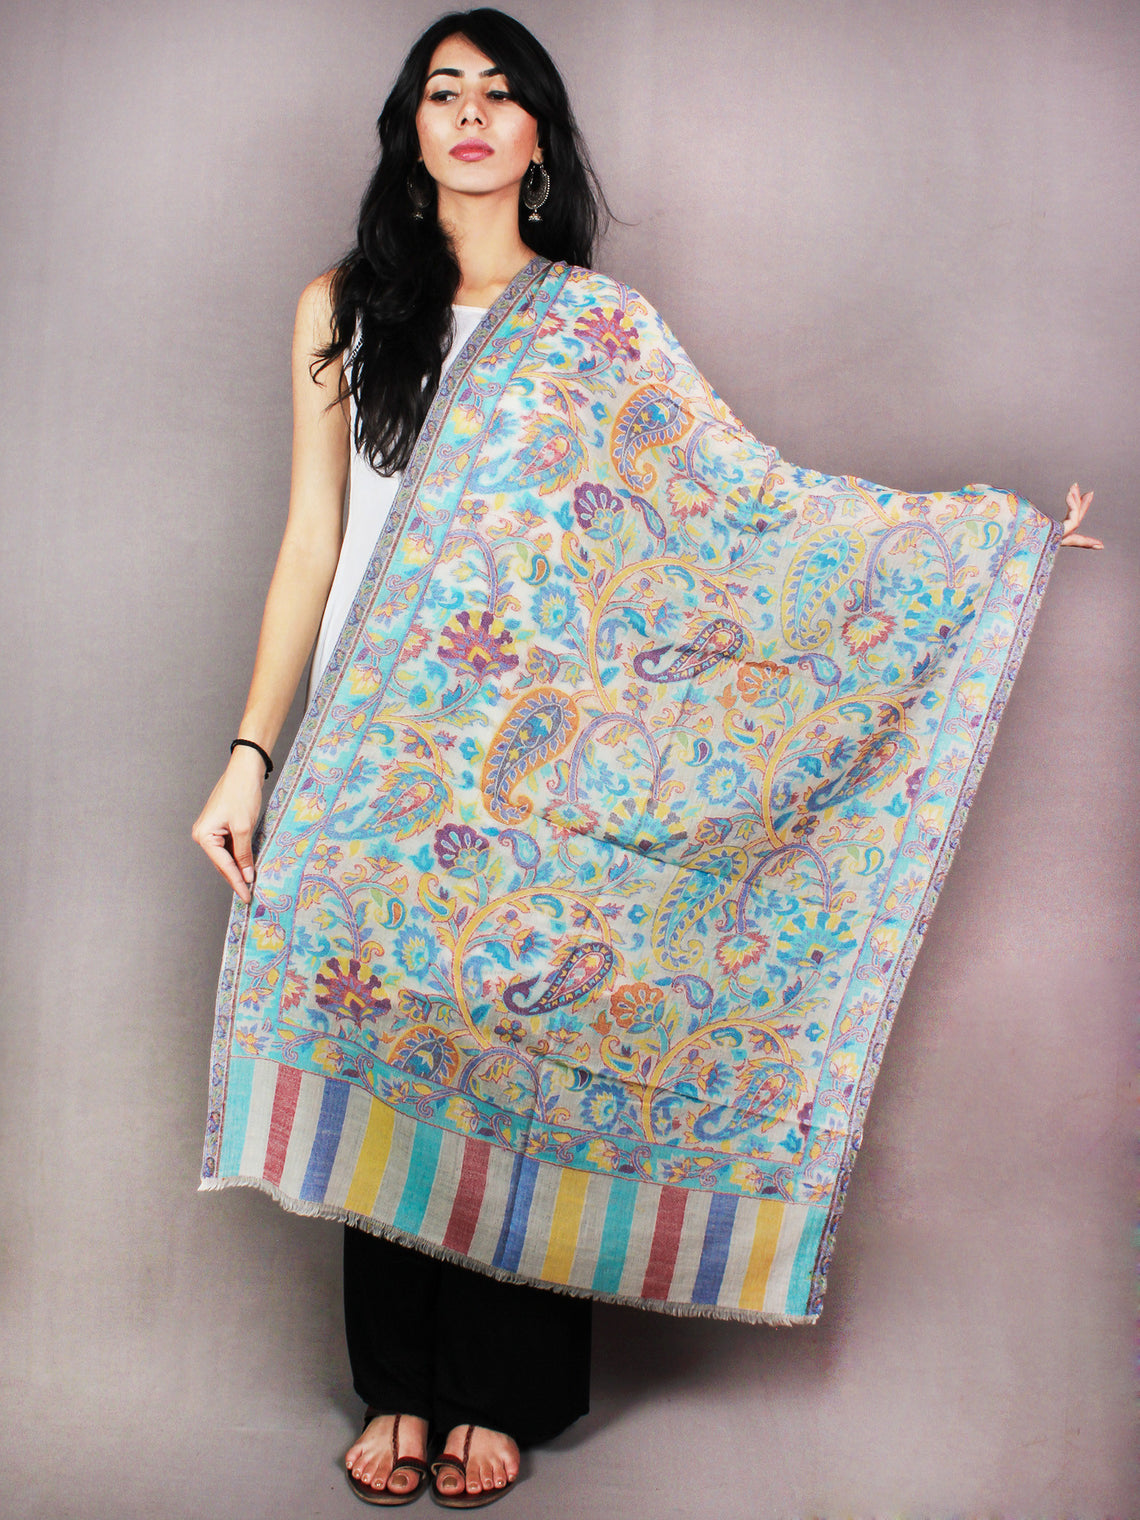 Ivory Sky Blue Yellow Kani Cutting Jamawar Pure Wool Cashmere Stole from Kashmir - S6317104